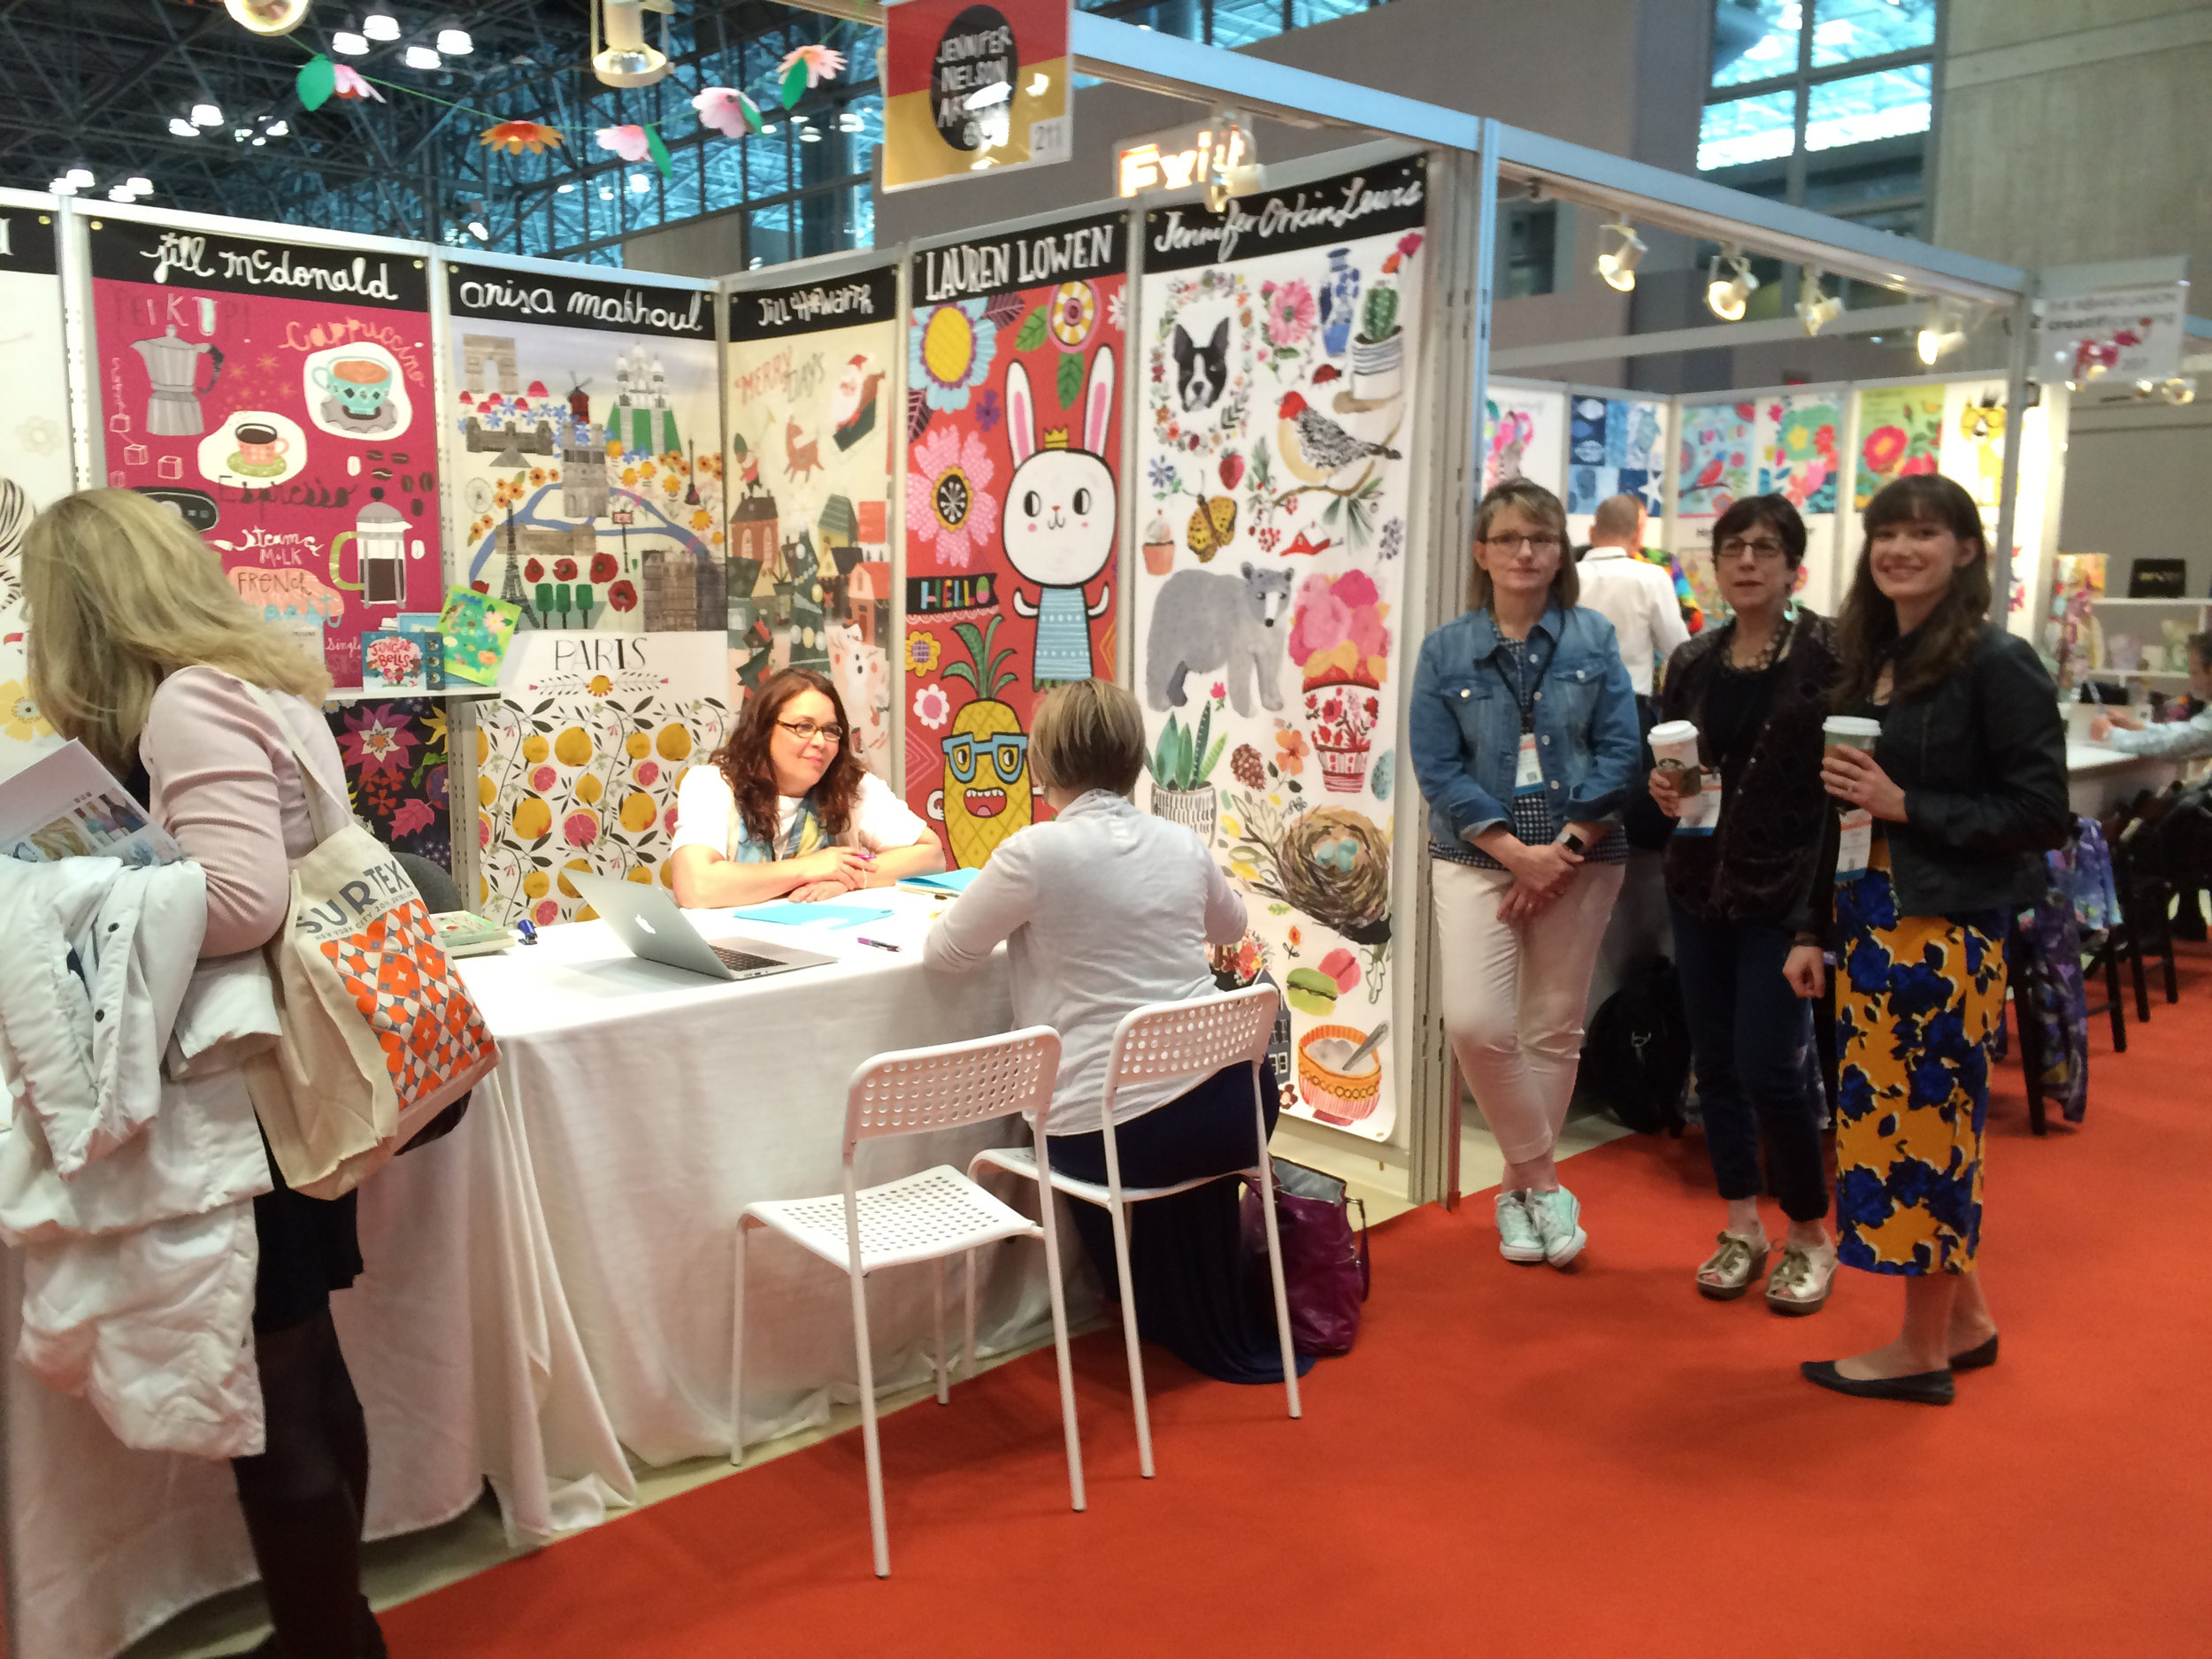 Jennifer Nelson Artists' booth stands out as a wonderful example of great booth design and representing great artists like Lauren Lowen, Jennifer Orkin Lewis (aka August Wren), Jill Howarth, Anisa Makhoul, Jill McDonald, Bee Brown, and Jessica Swift.